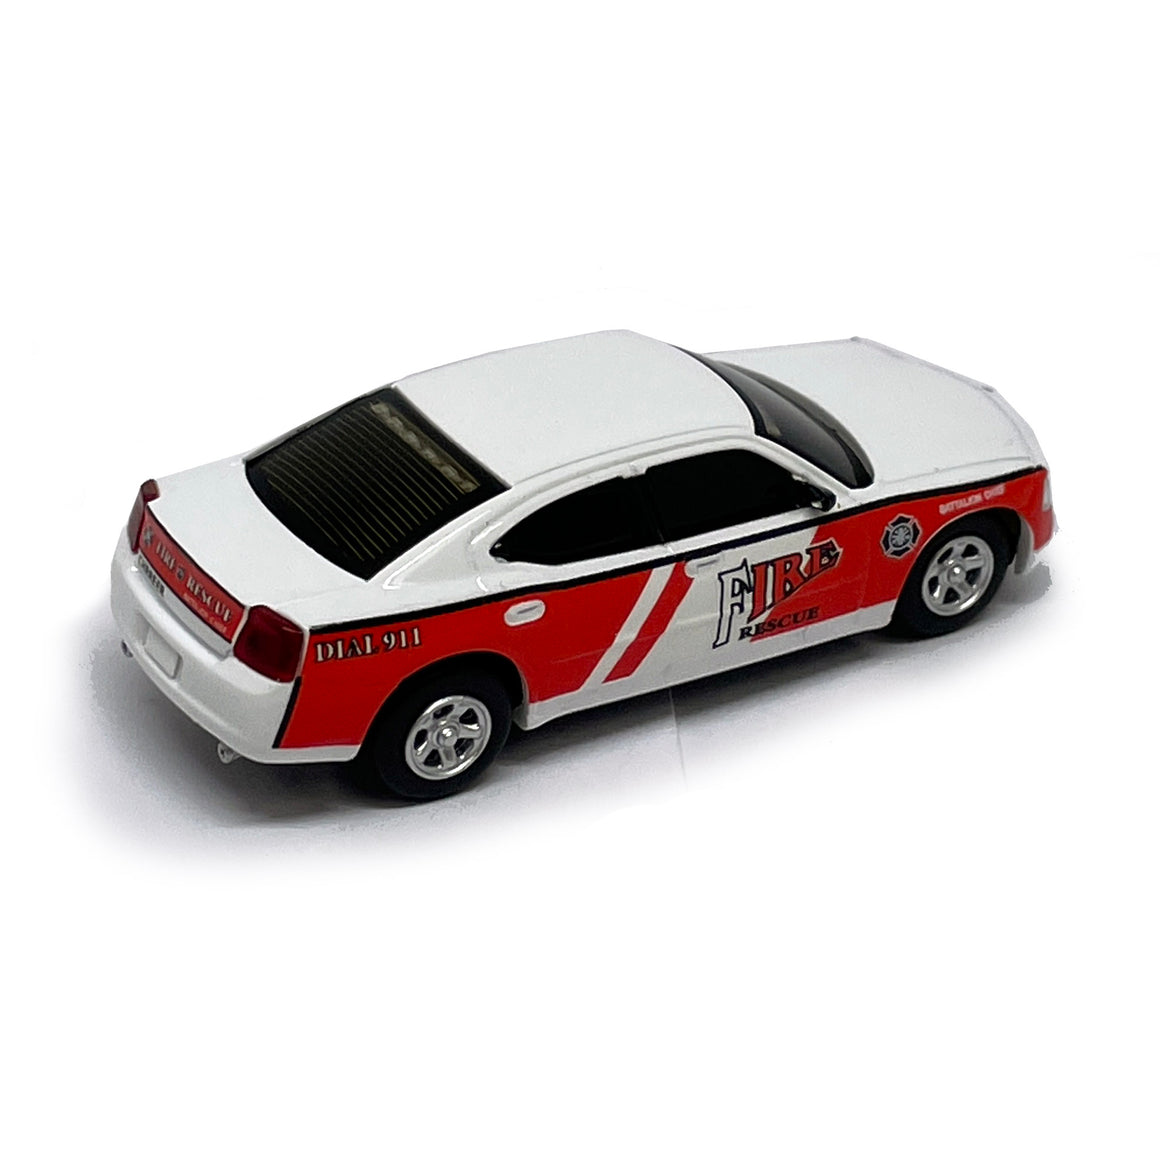 HO Scale: Lighted - Dodge Charger - Fire Chief